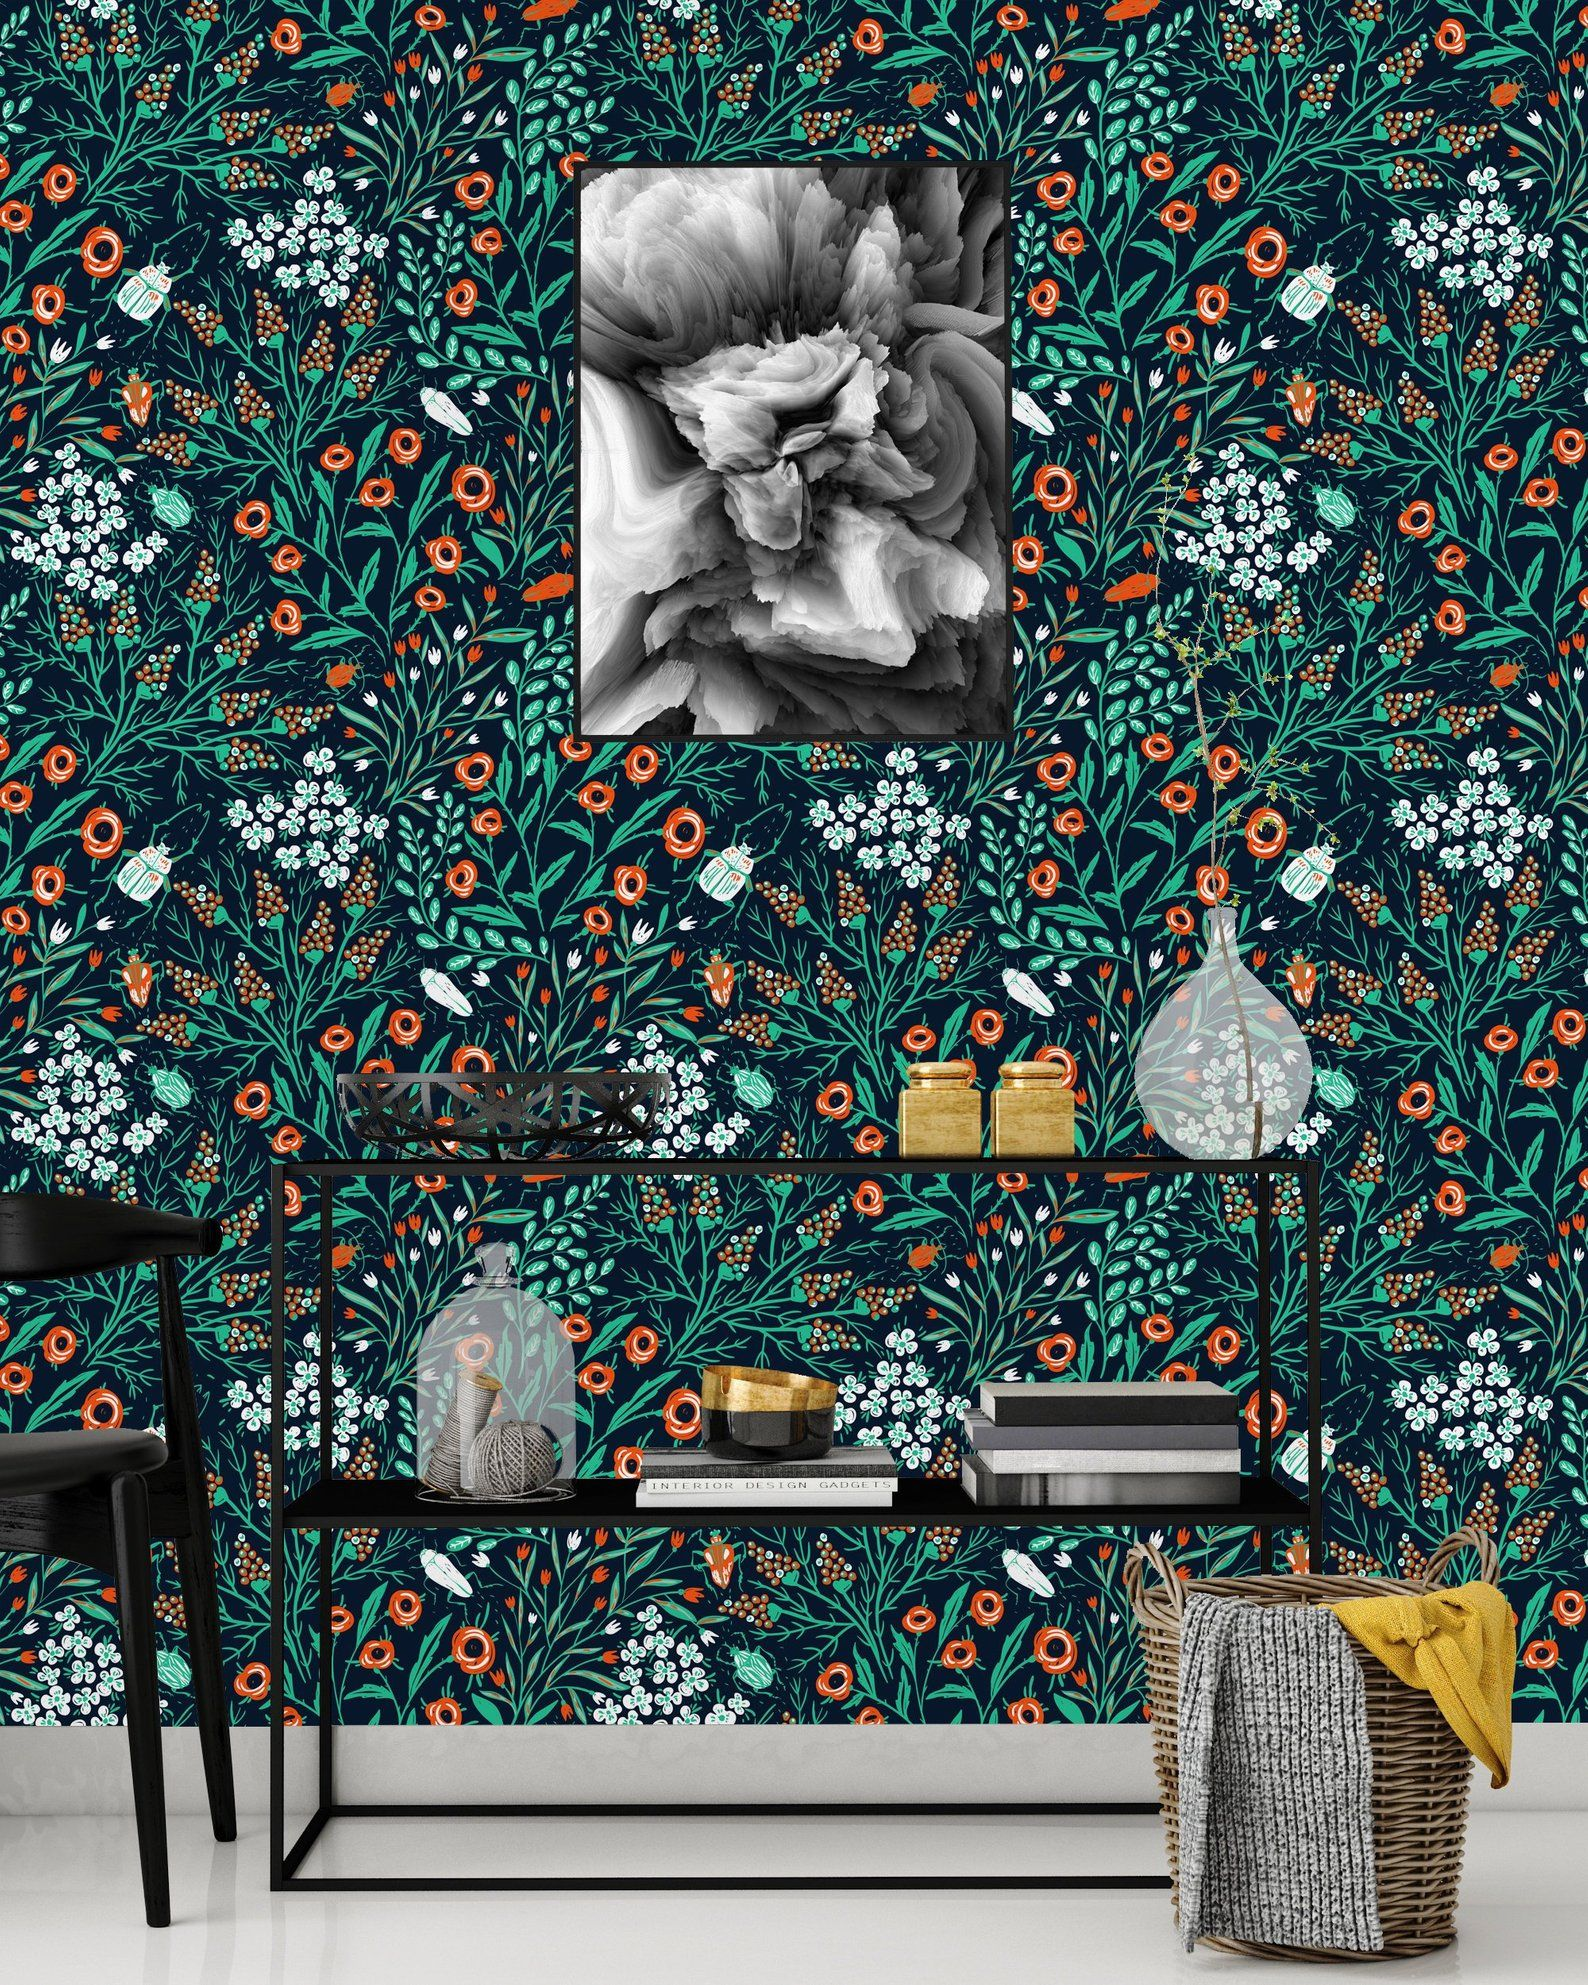 Blooms And Bugs Removable Wallpaper Peel Stick Mural Etsy Peel And Stick Wallpaper Removable Wallpaper Nursery Mural